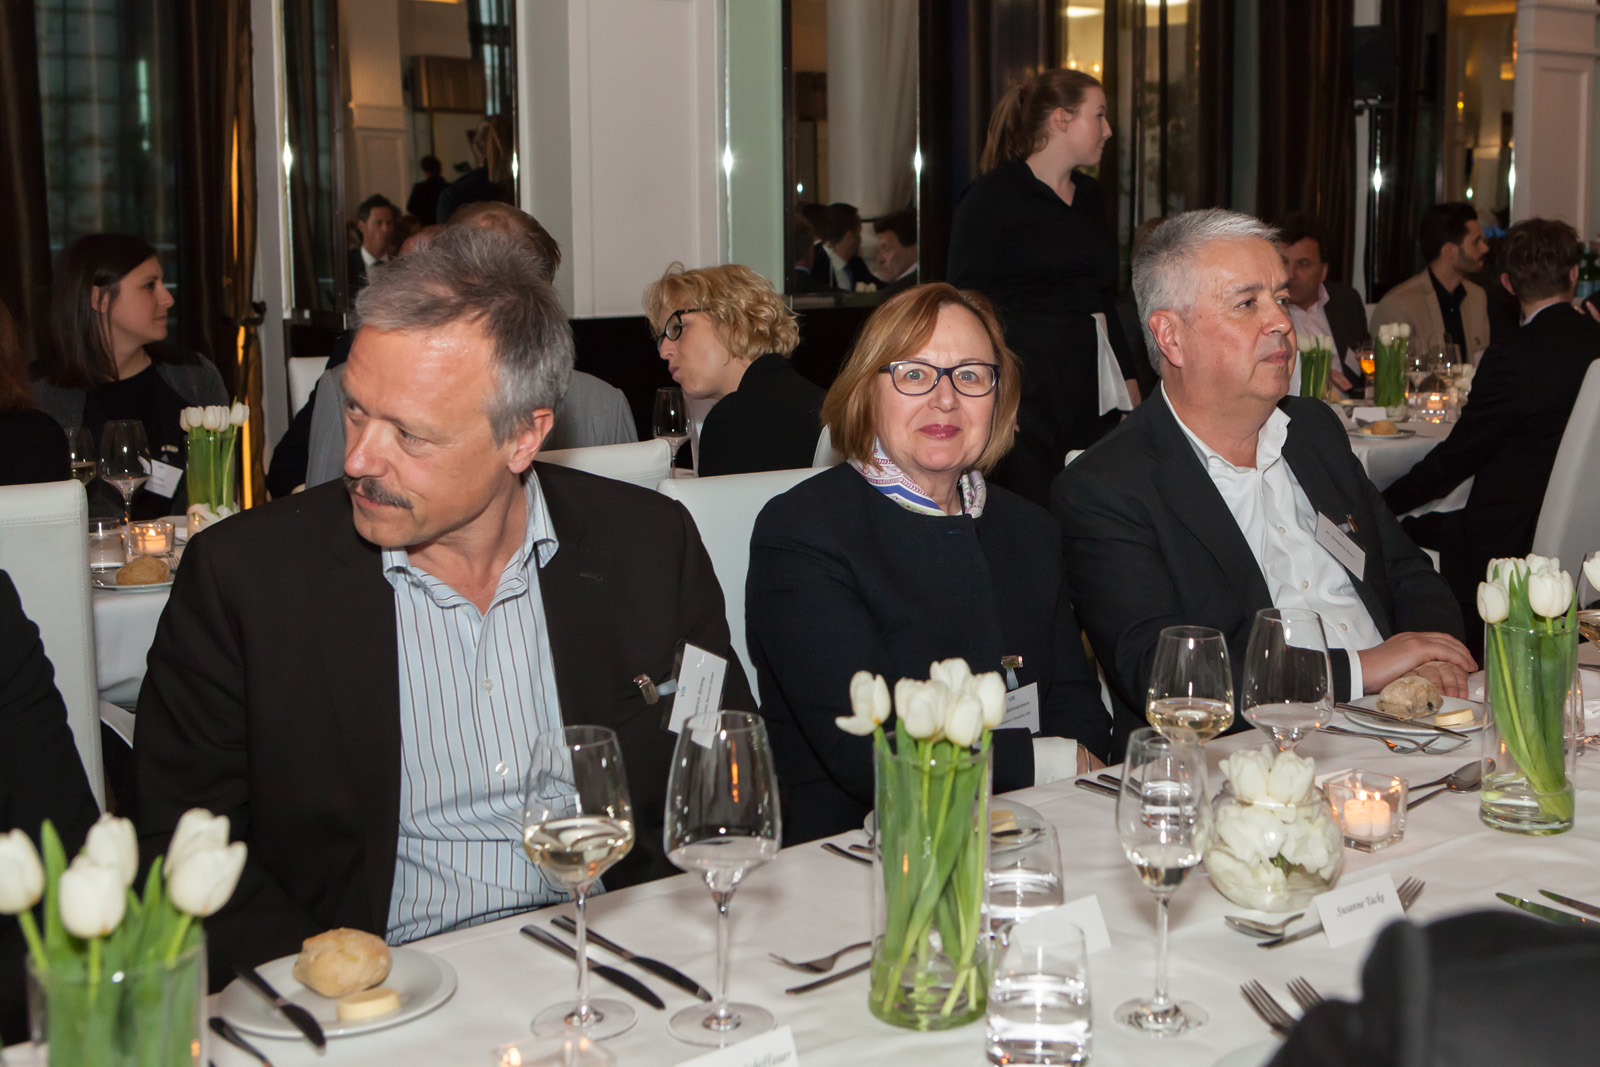 Friedrich Streng, InTime Media Services, Helena Bommersheim, Bommersheim Consulting, Dr. Wolfgang Stock (Foto: Bettina Theisinger)